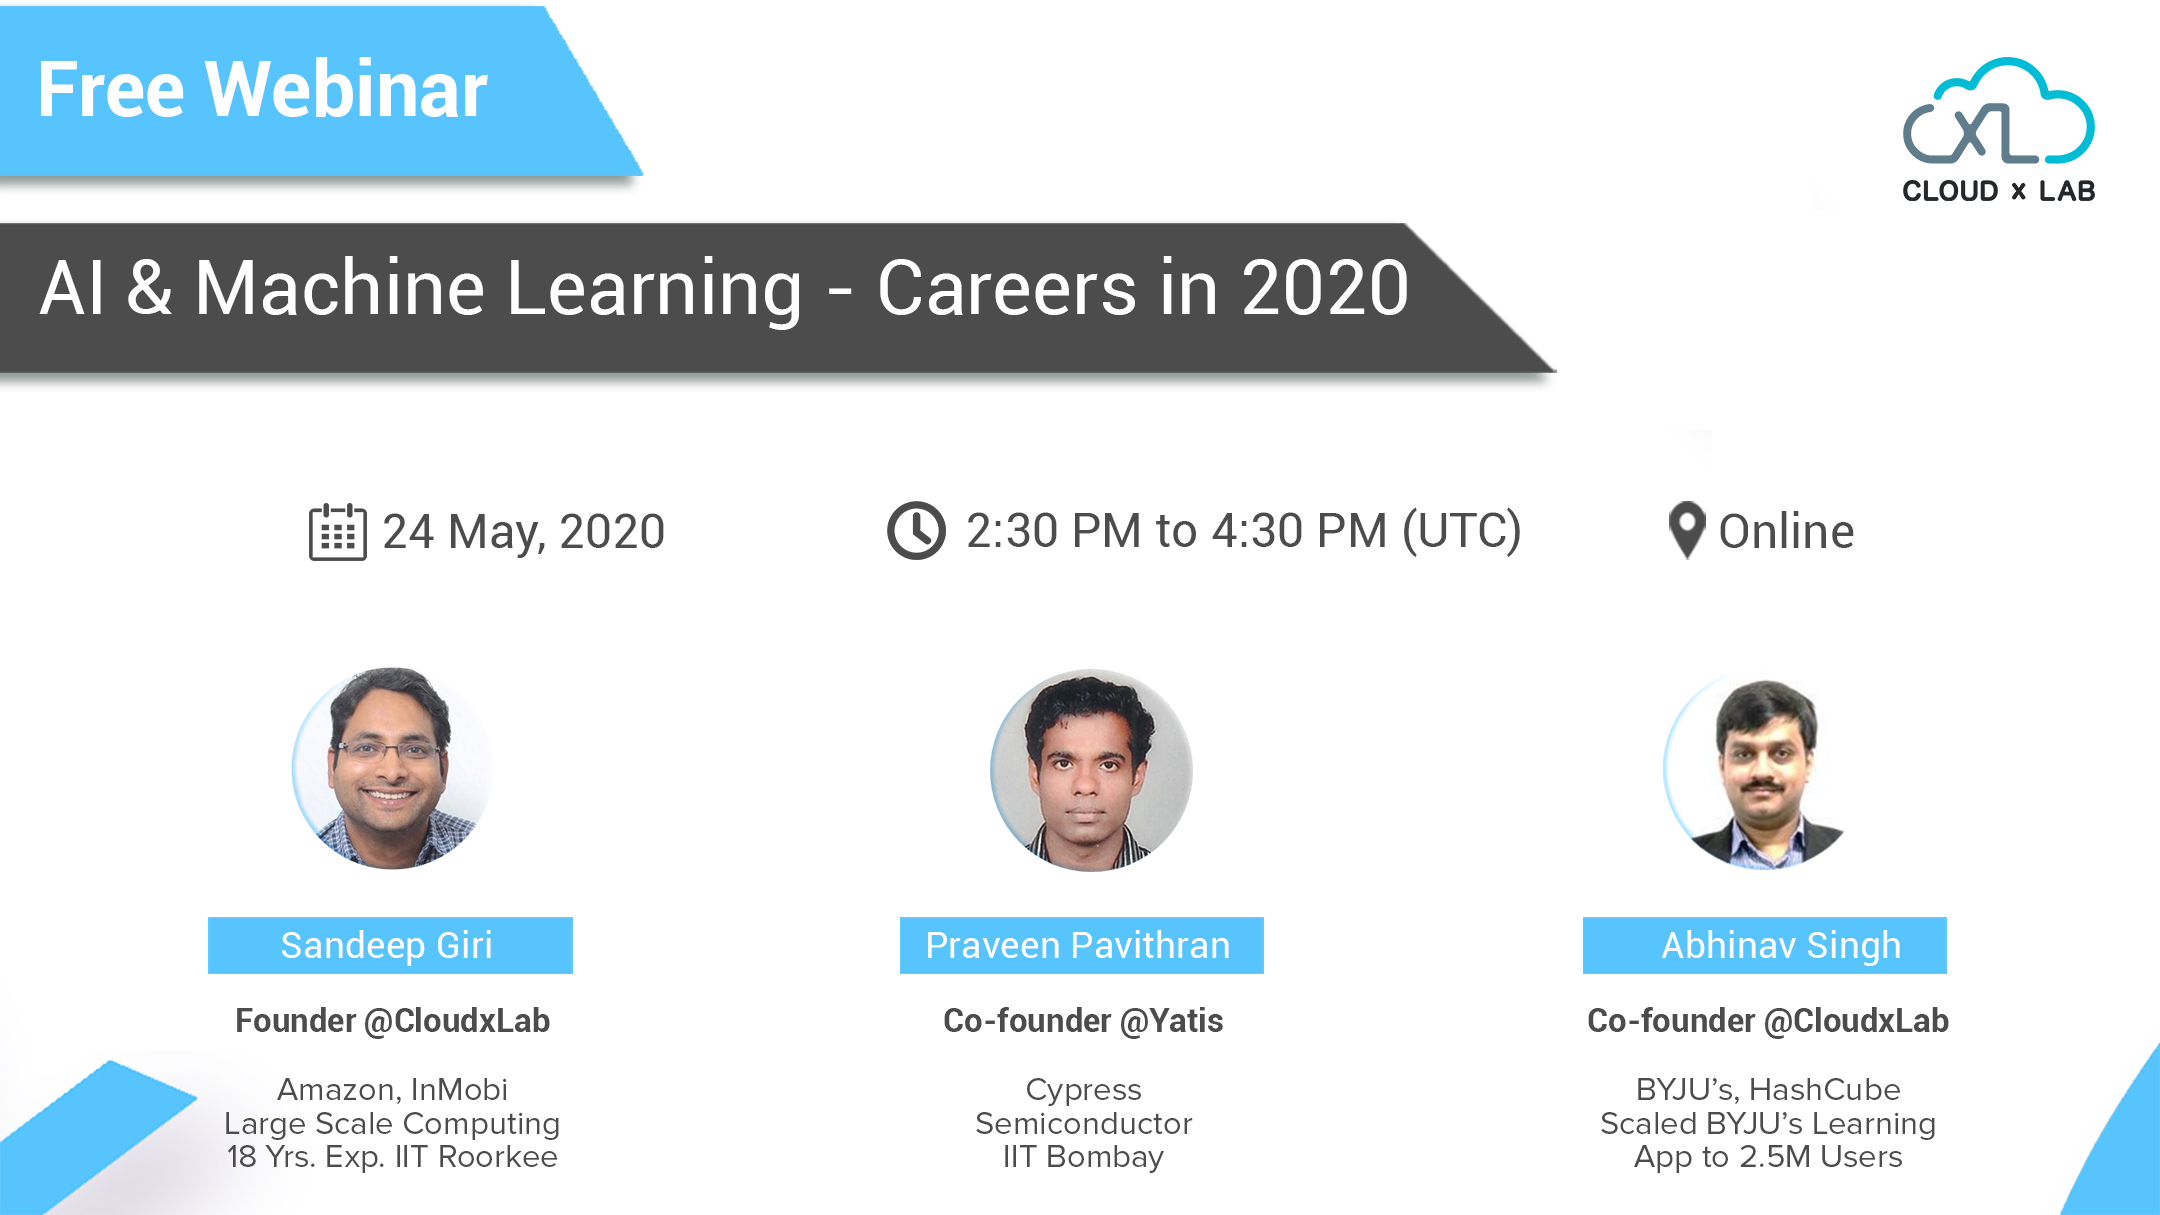 AI & Machine Learning - Careers in 2020